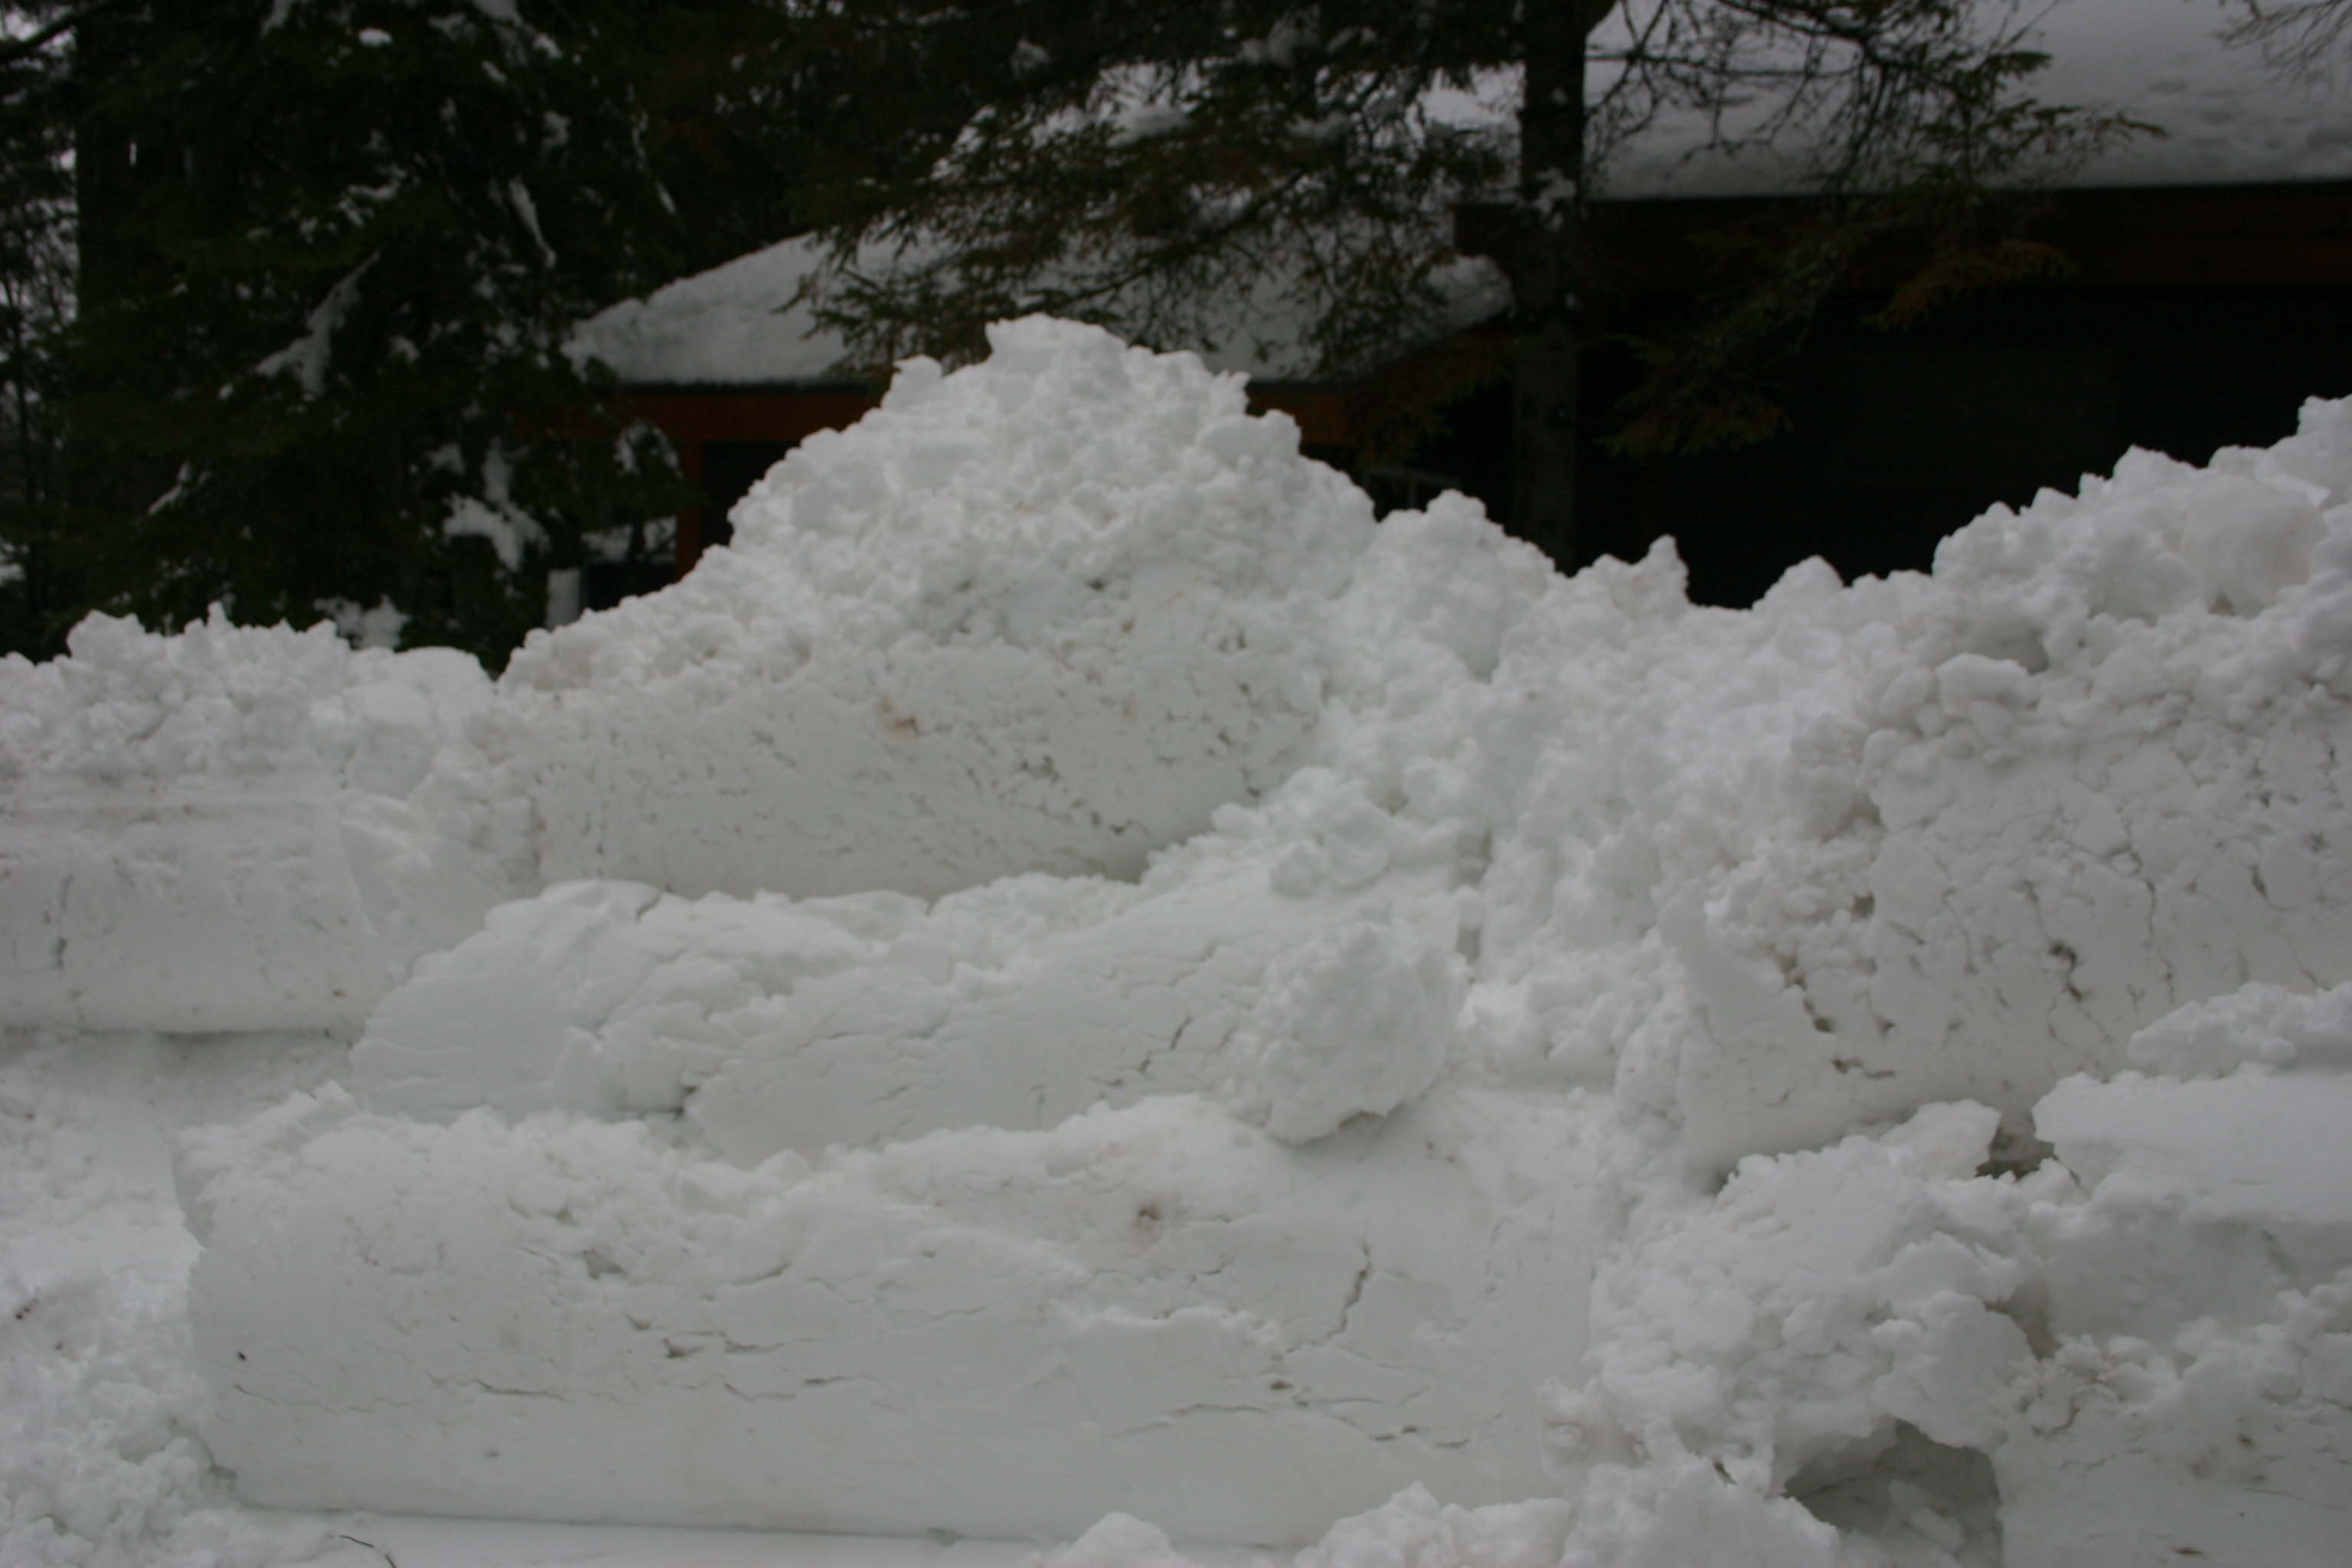 The snow from the driveway in front of Loon and Mallard created this 10 foot + mound of snow.